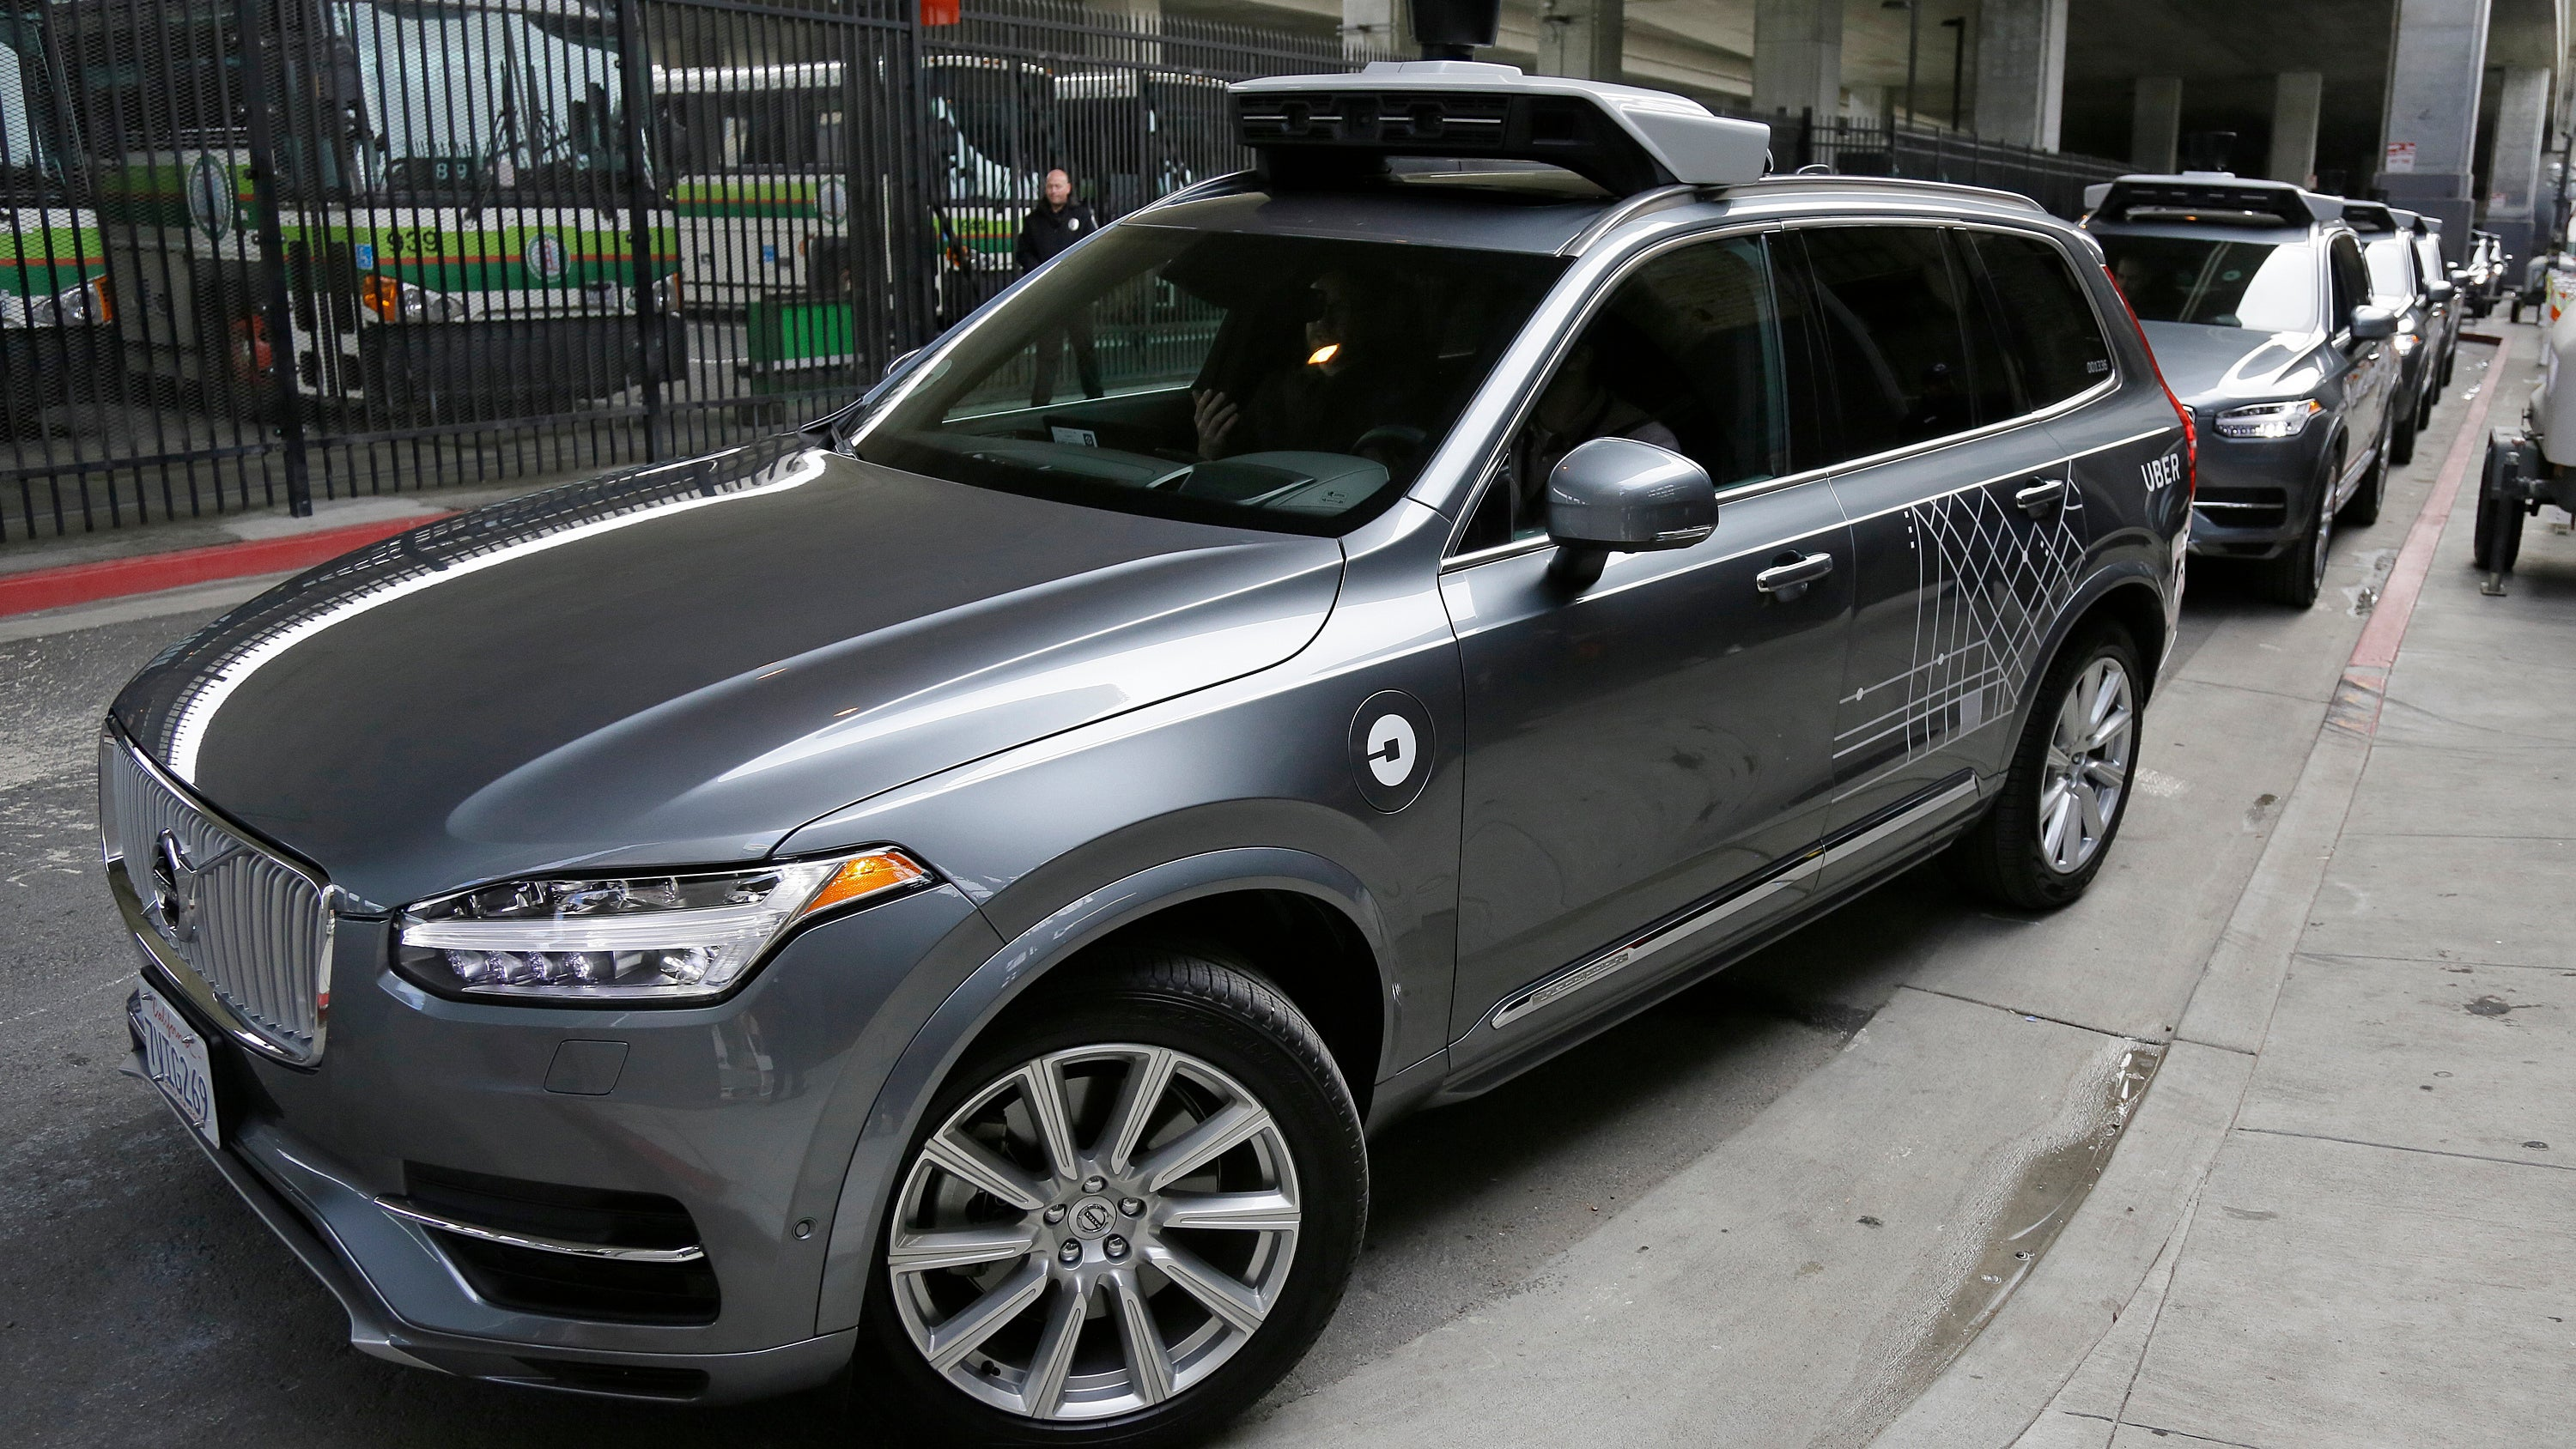 How Worried Should We Be? Experts Respond To The Self-Driving Uber Fatality